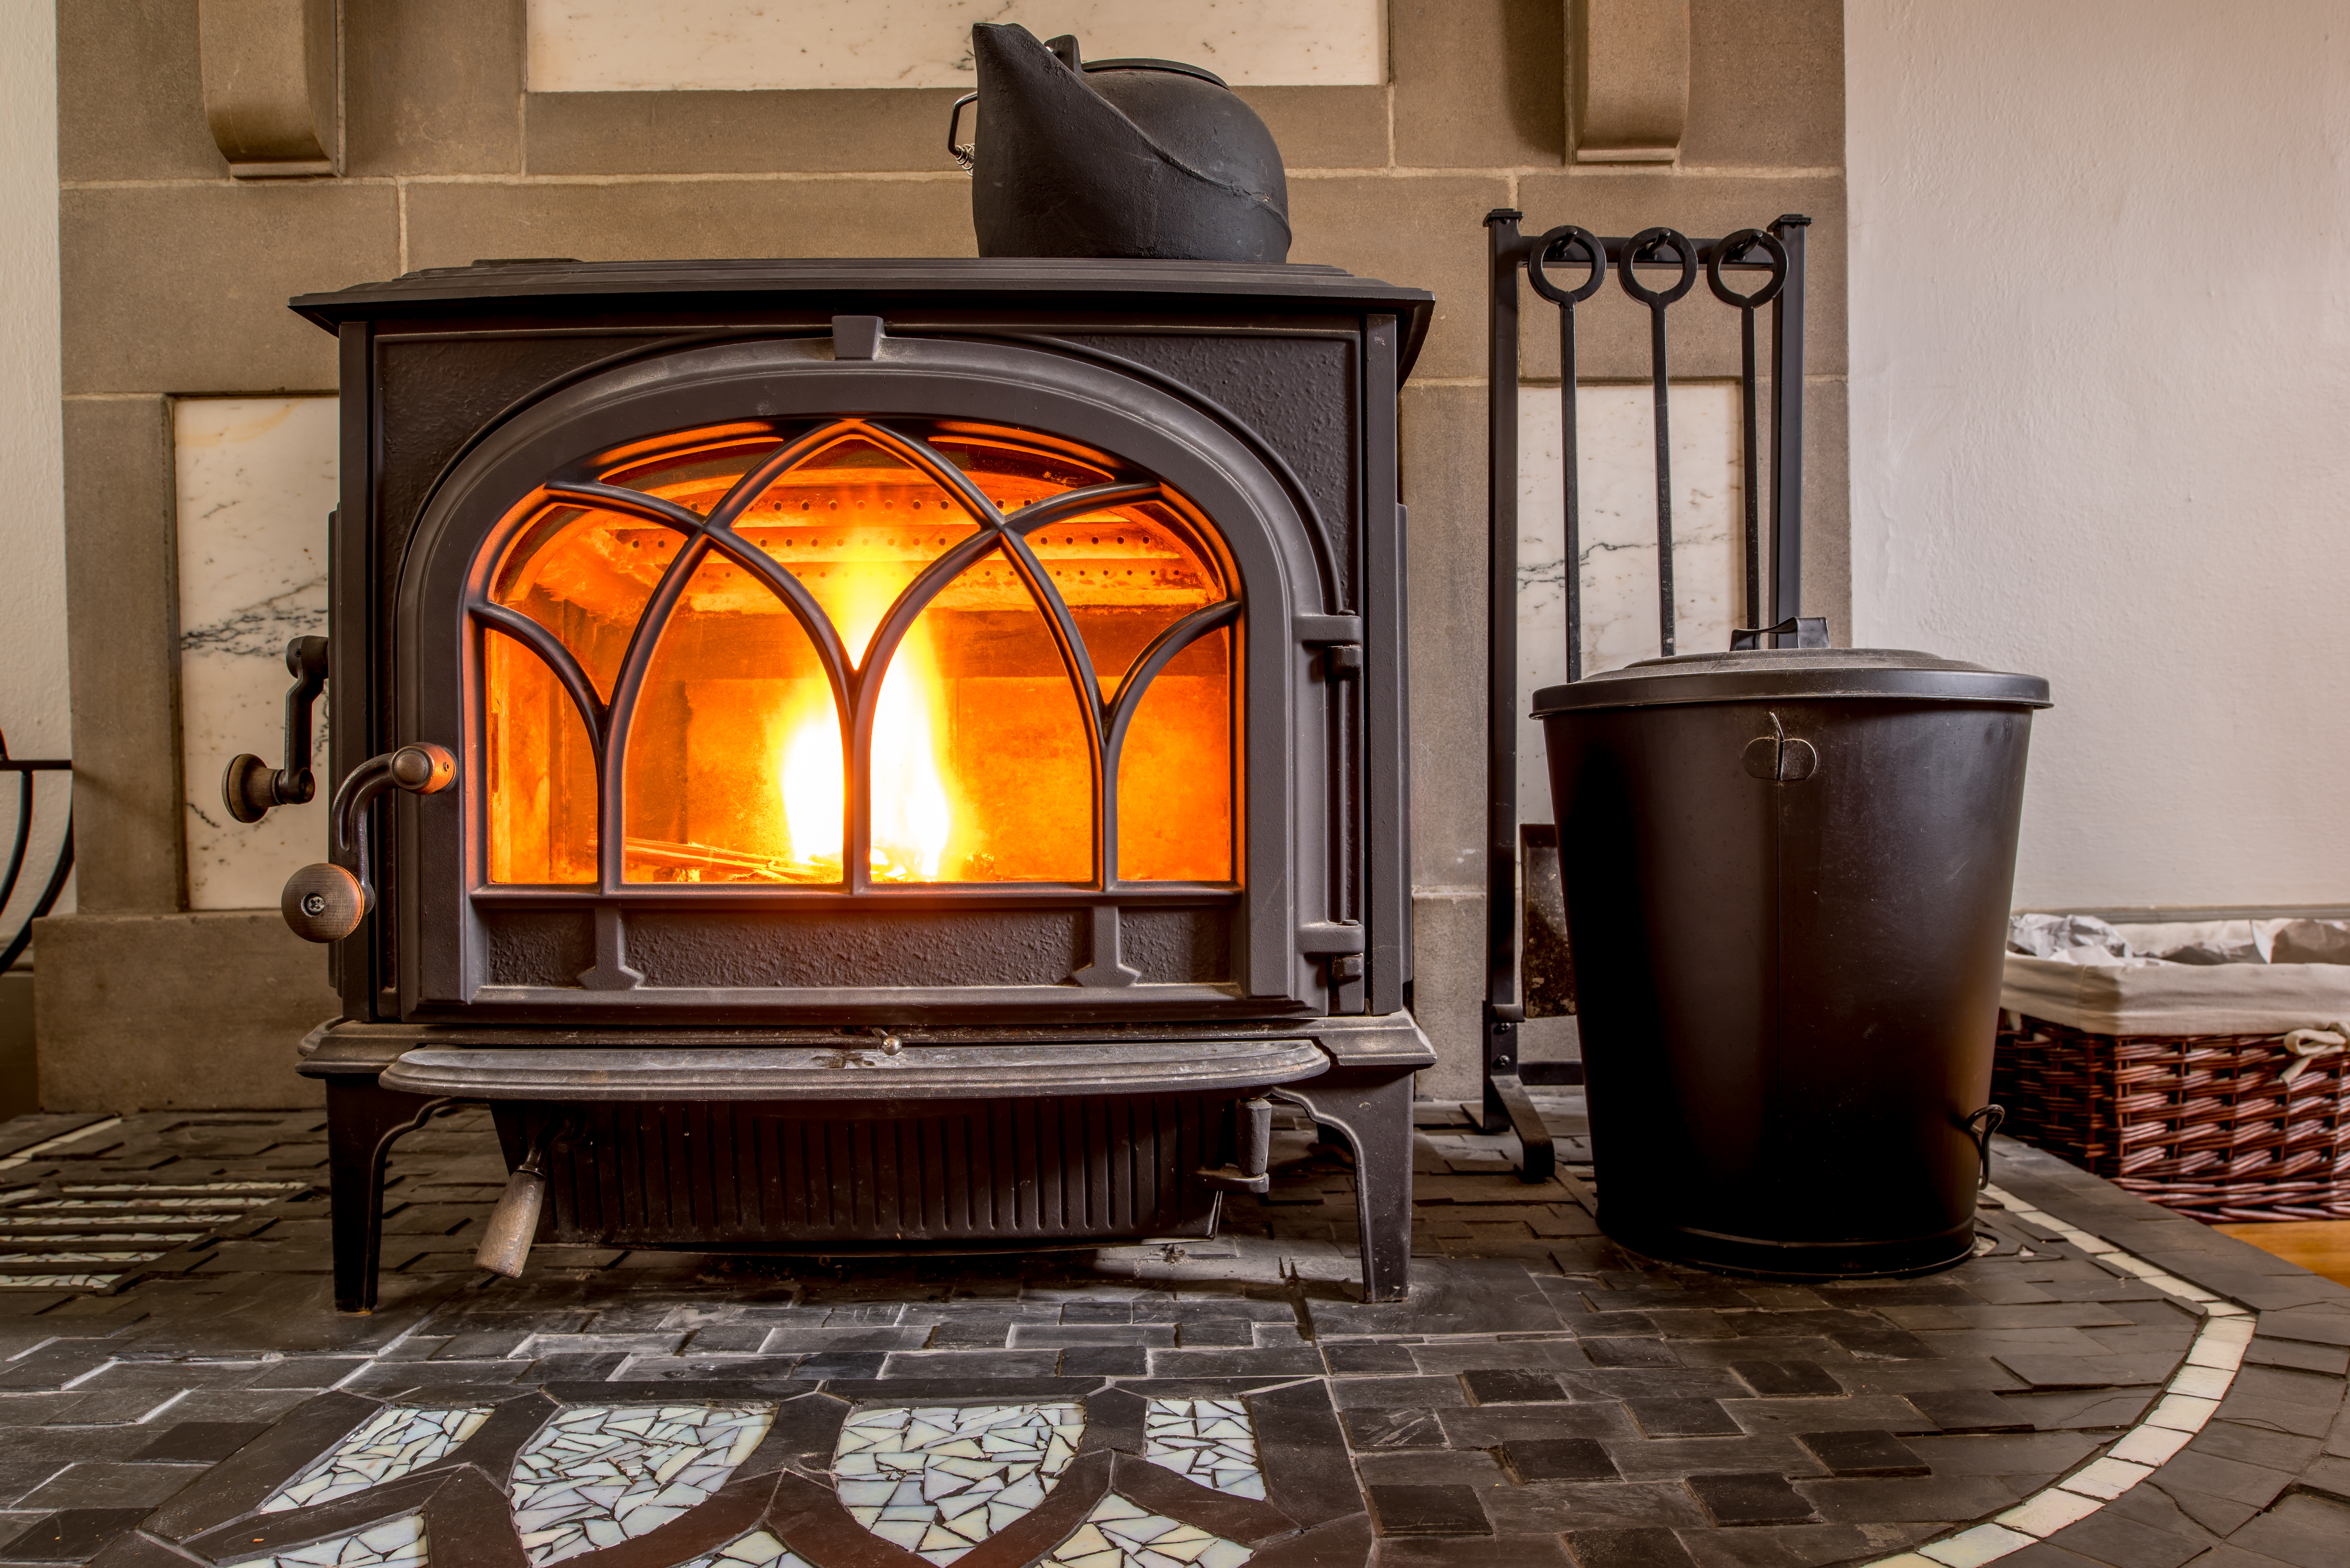 Temperatures Of A Wood Burning Stove Home Guides Sf Gate